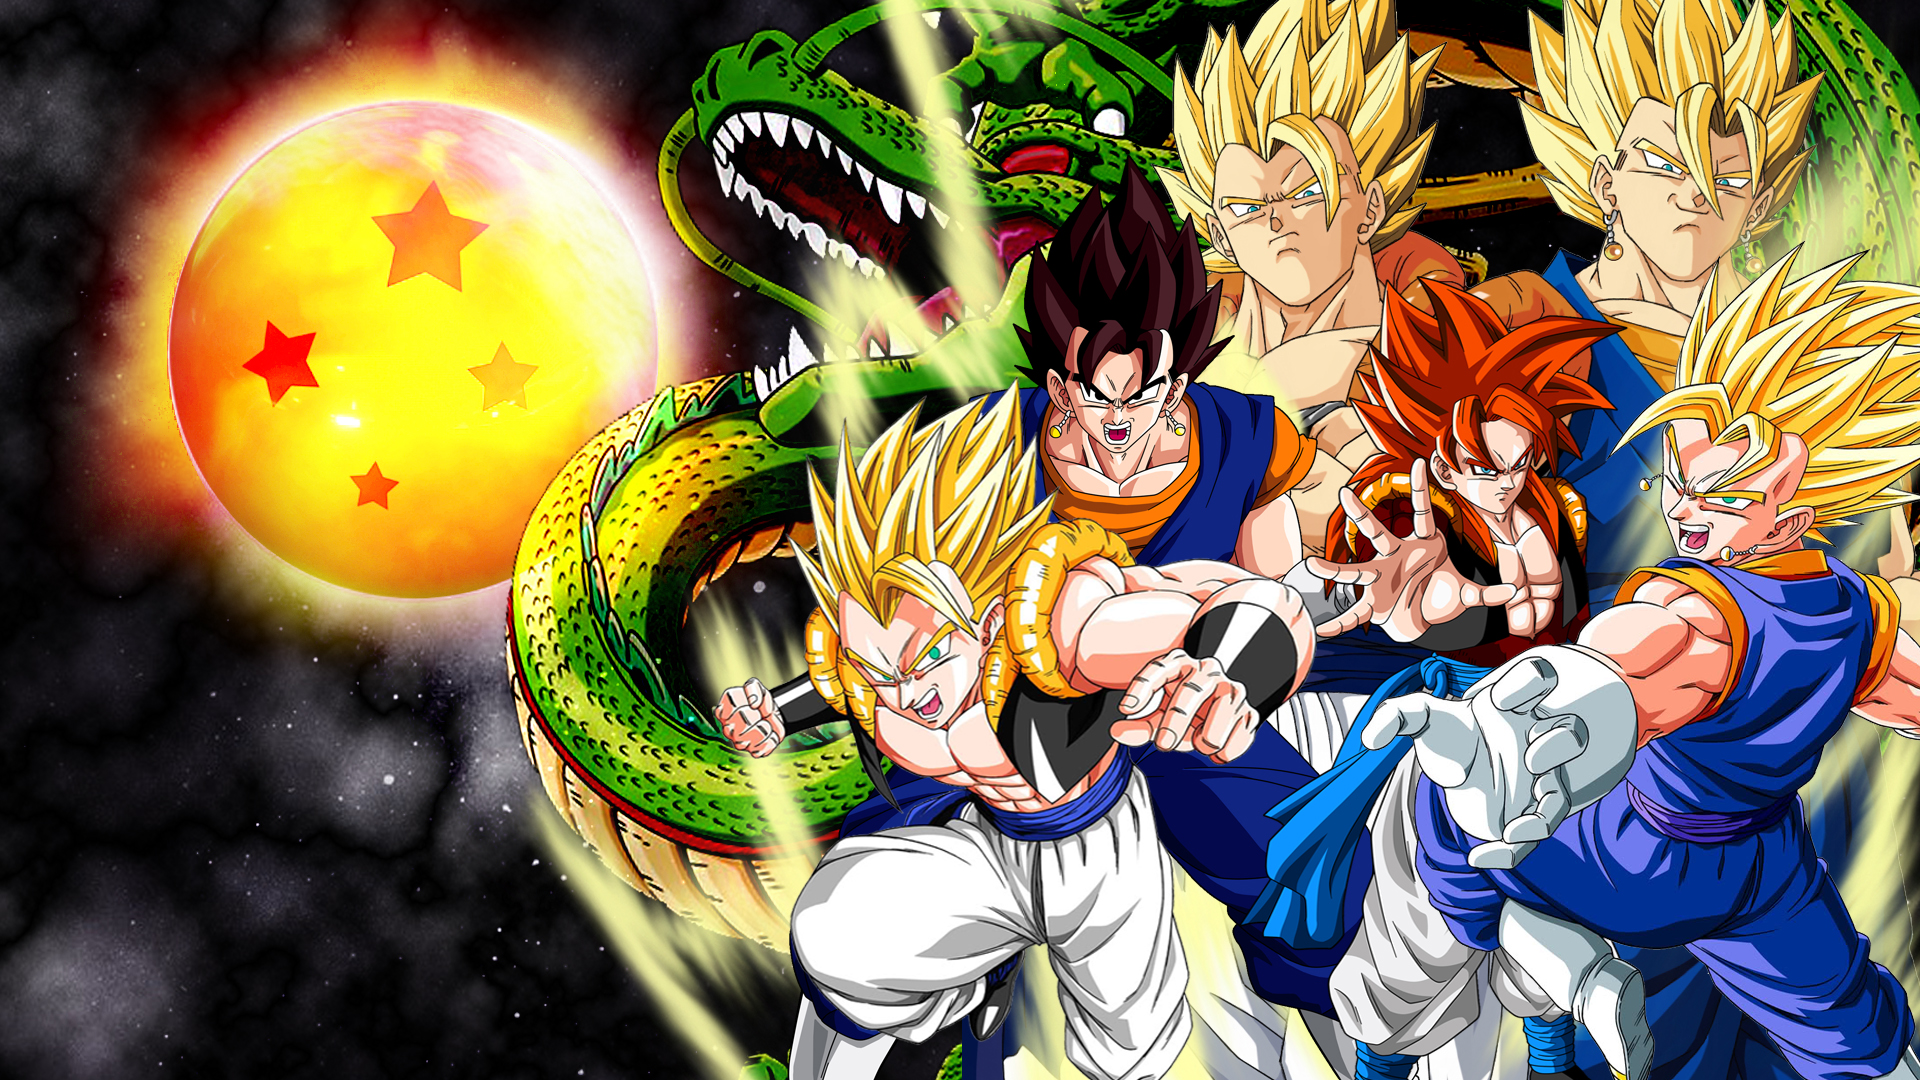 Dragon Ball Z Wallpapers Goku Wallpapers Backgrounds Images Art 1920x1080